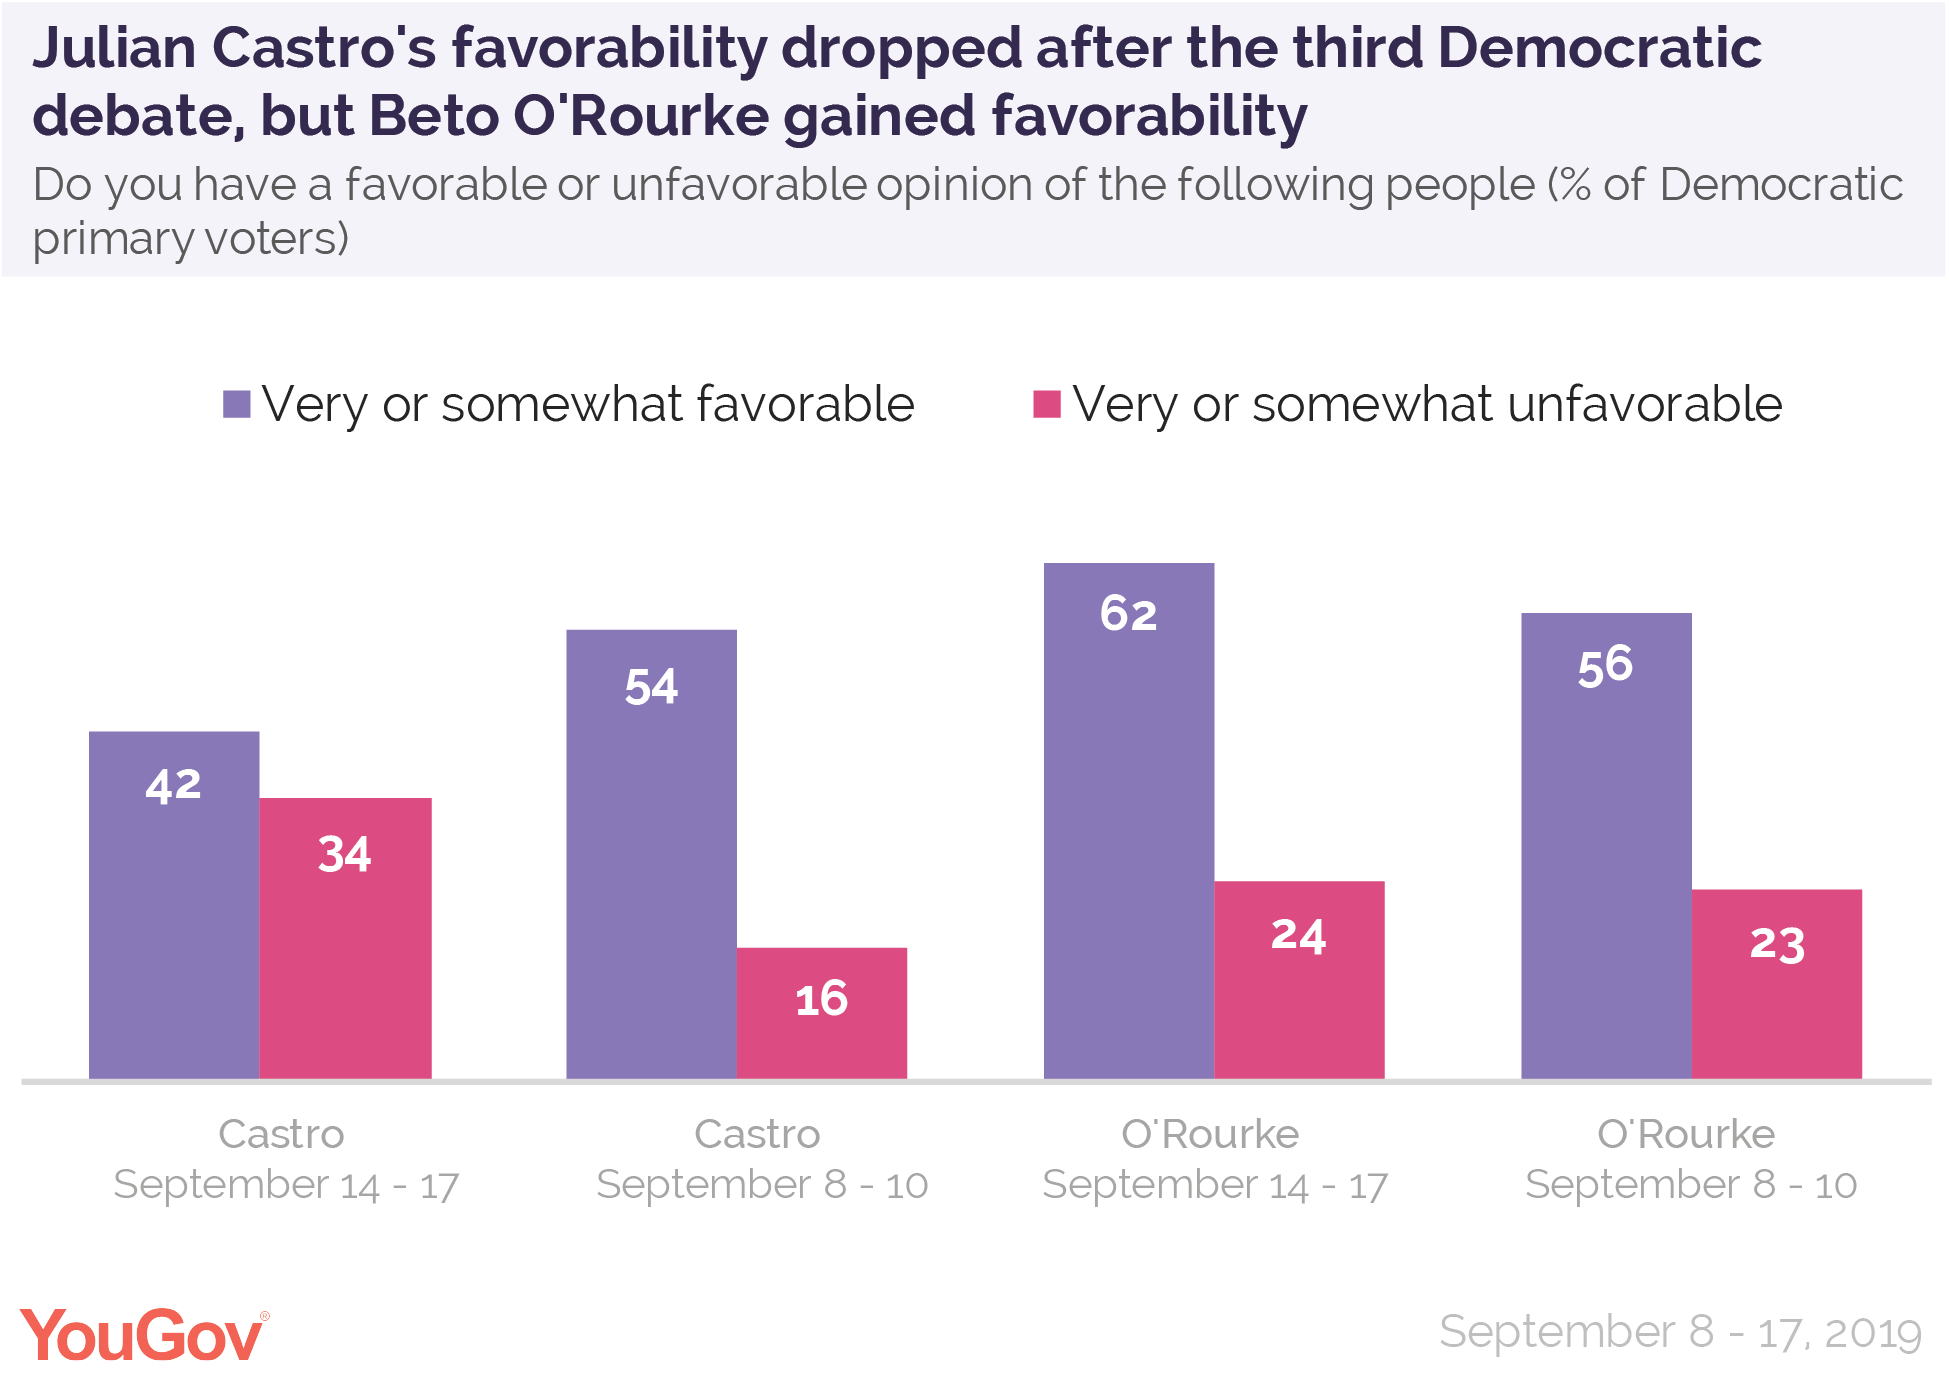 Julian Castro's favorability dropped after the third Democratic debate but Beto O'Rourke gained favorability